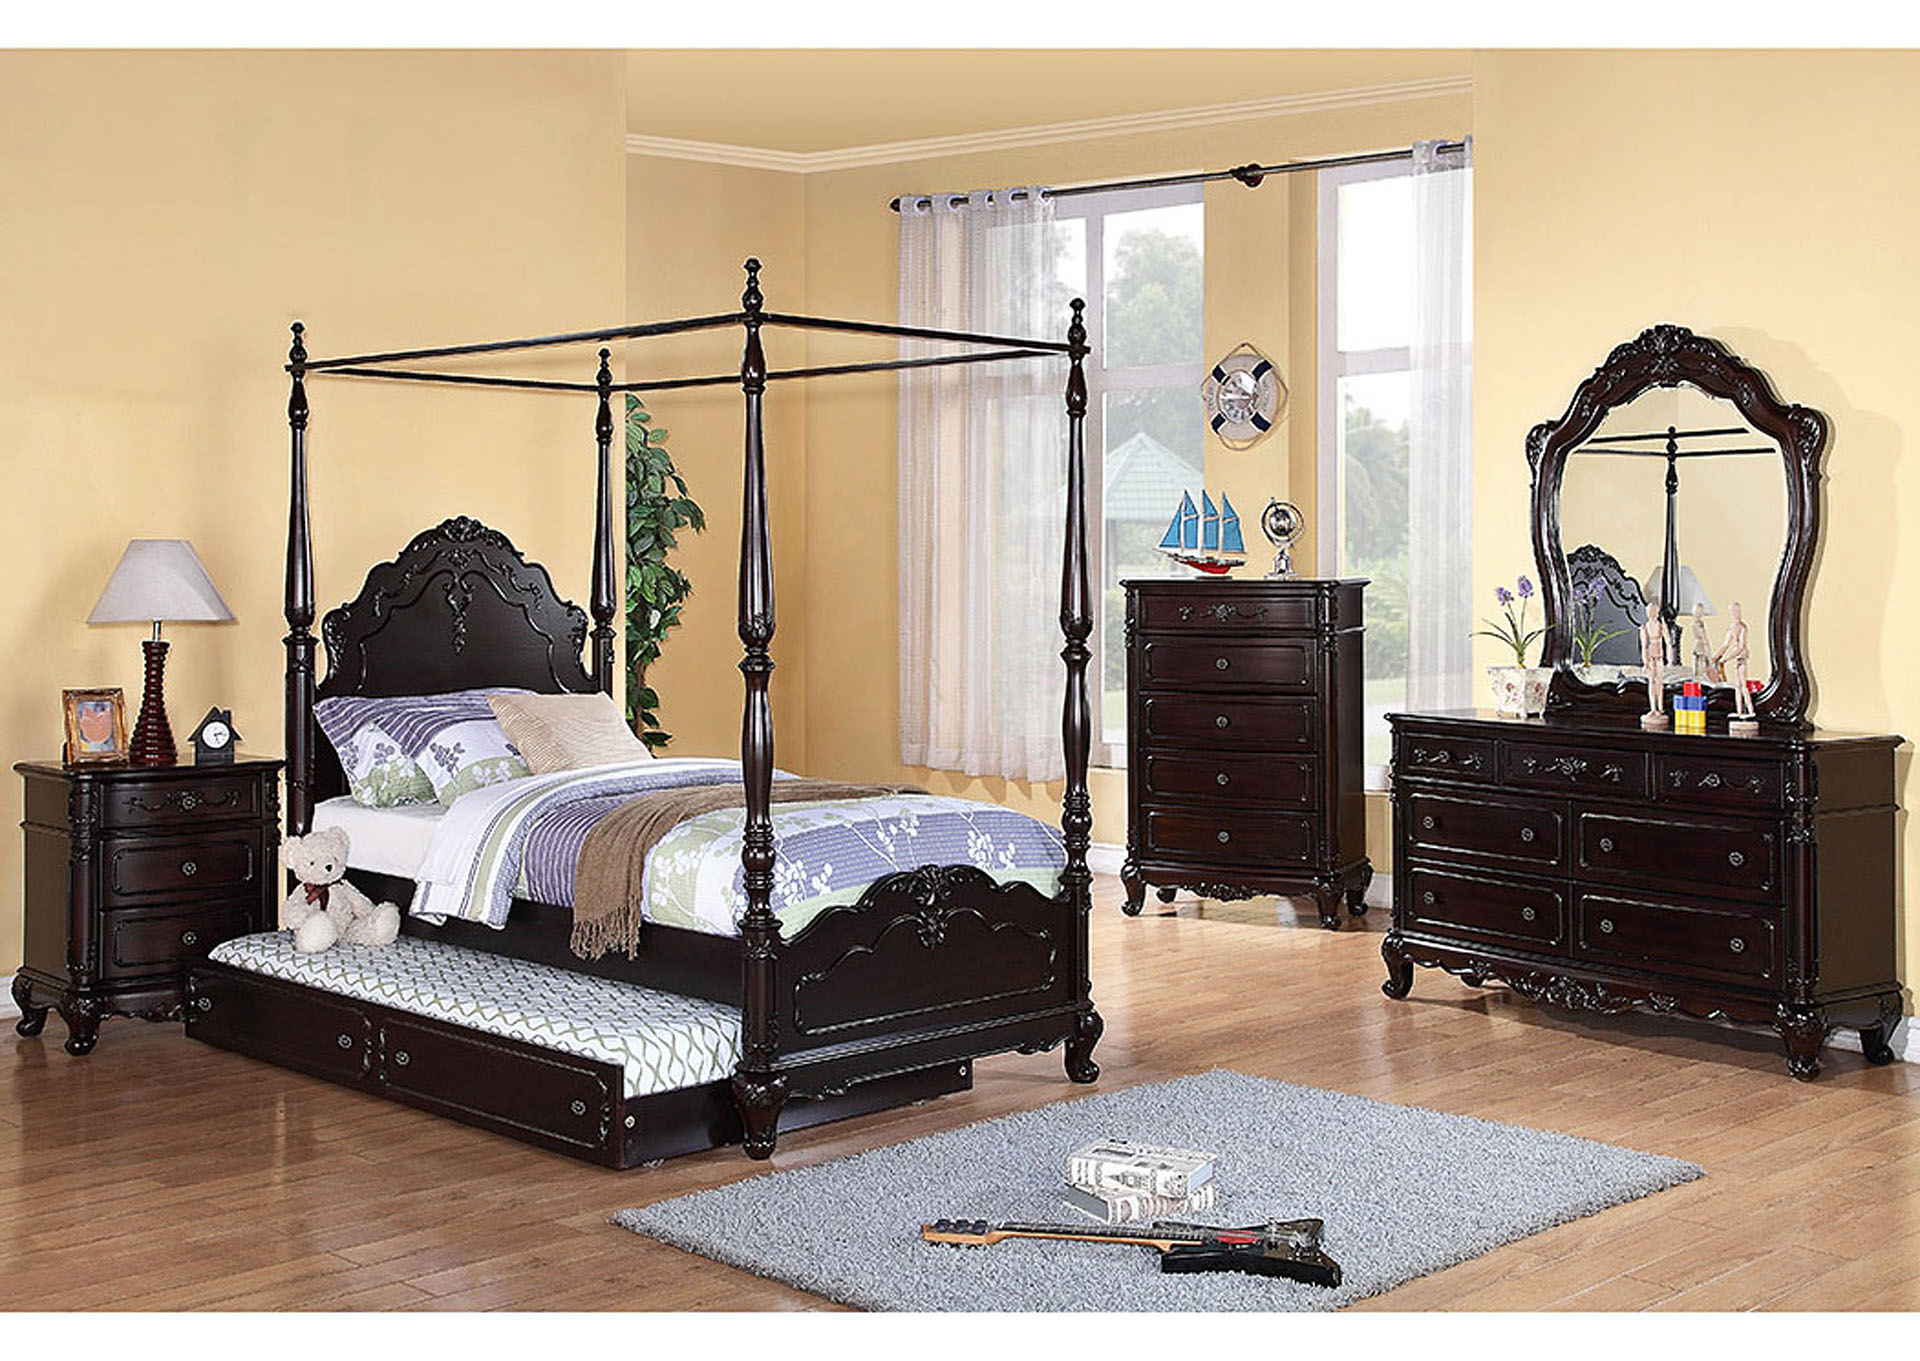 Exceptionnel Cinderella Dark Cherry Twin Trundle For Canopy Bed,Homelegance